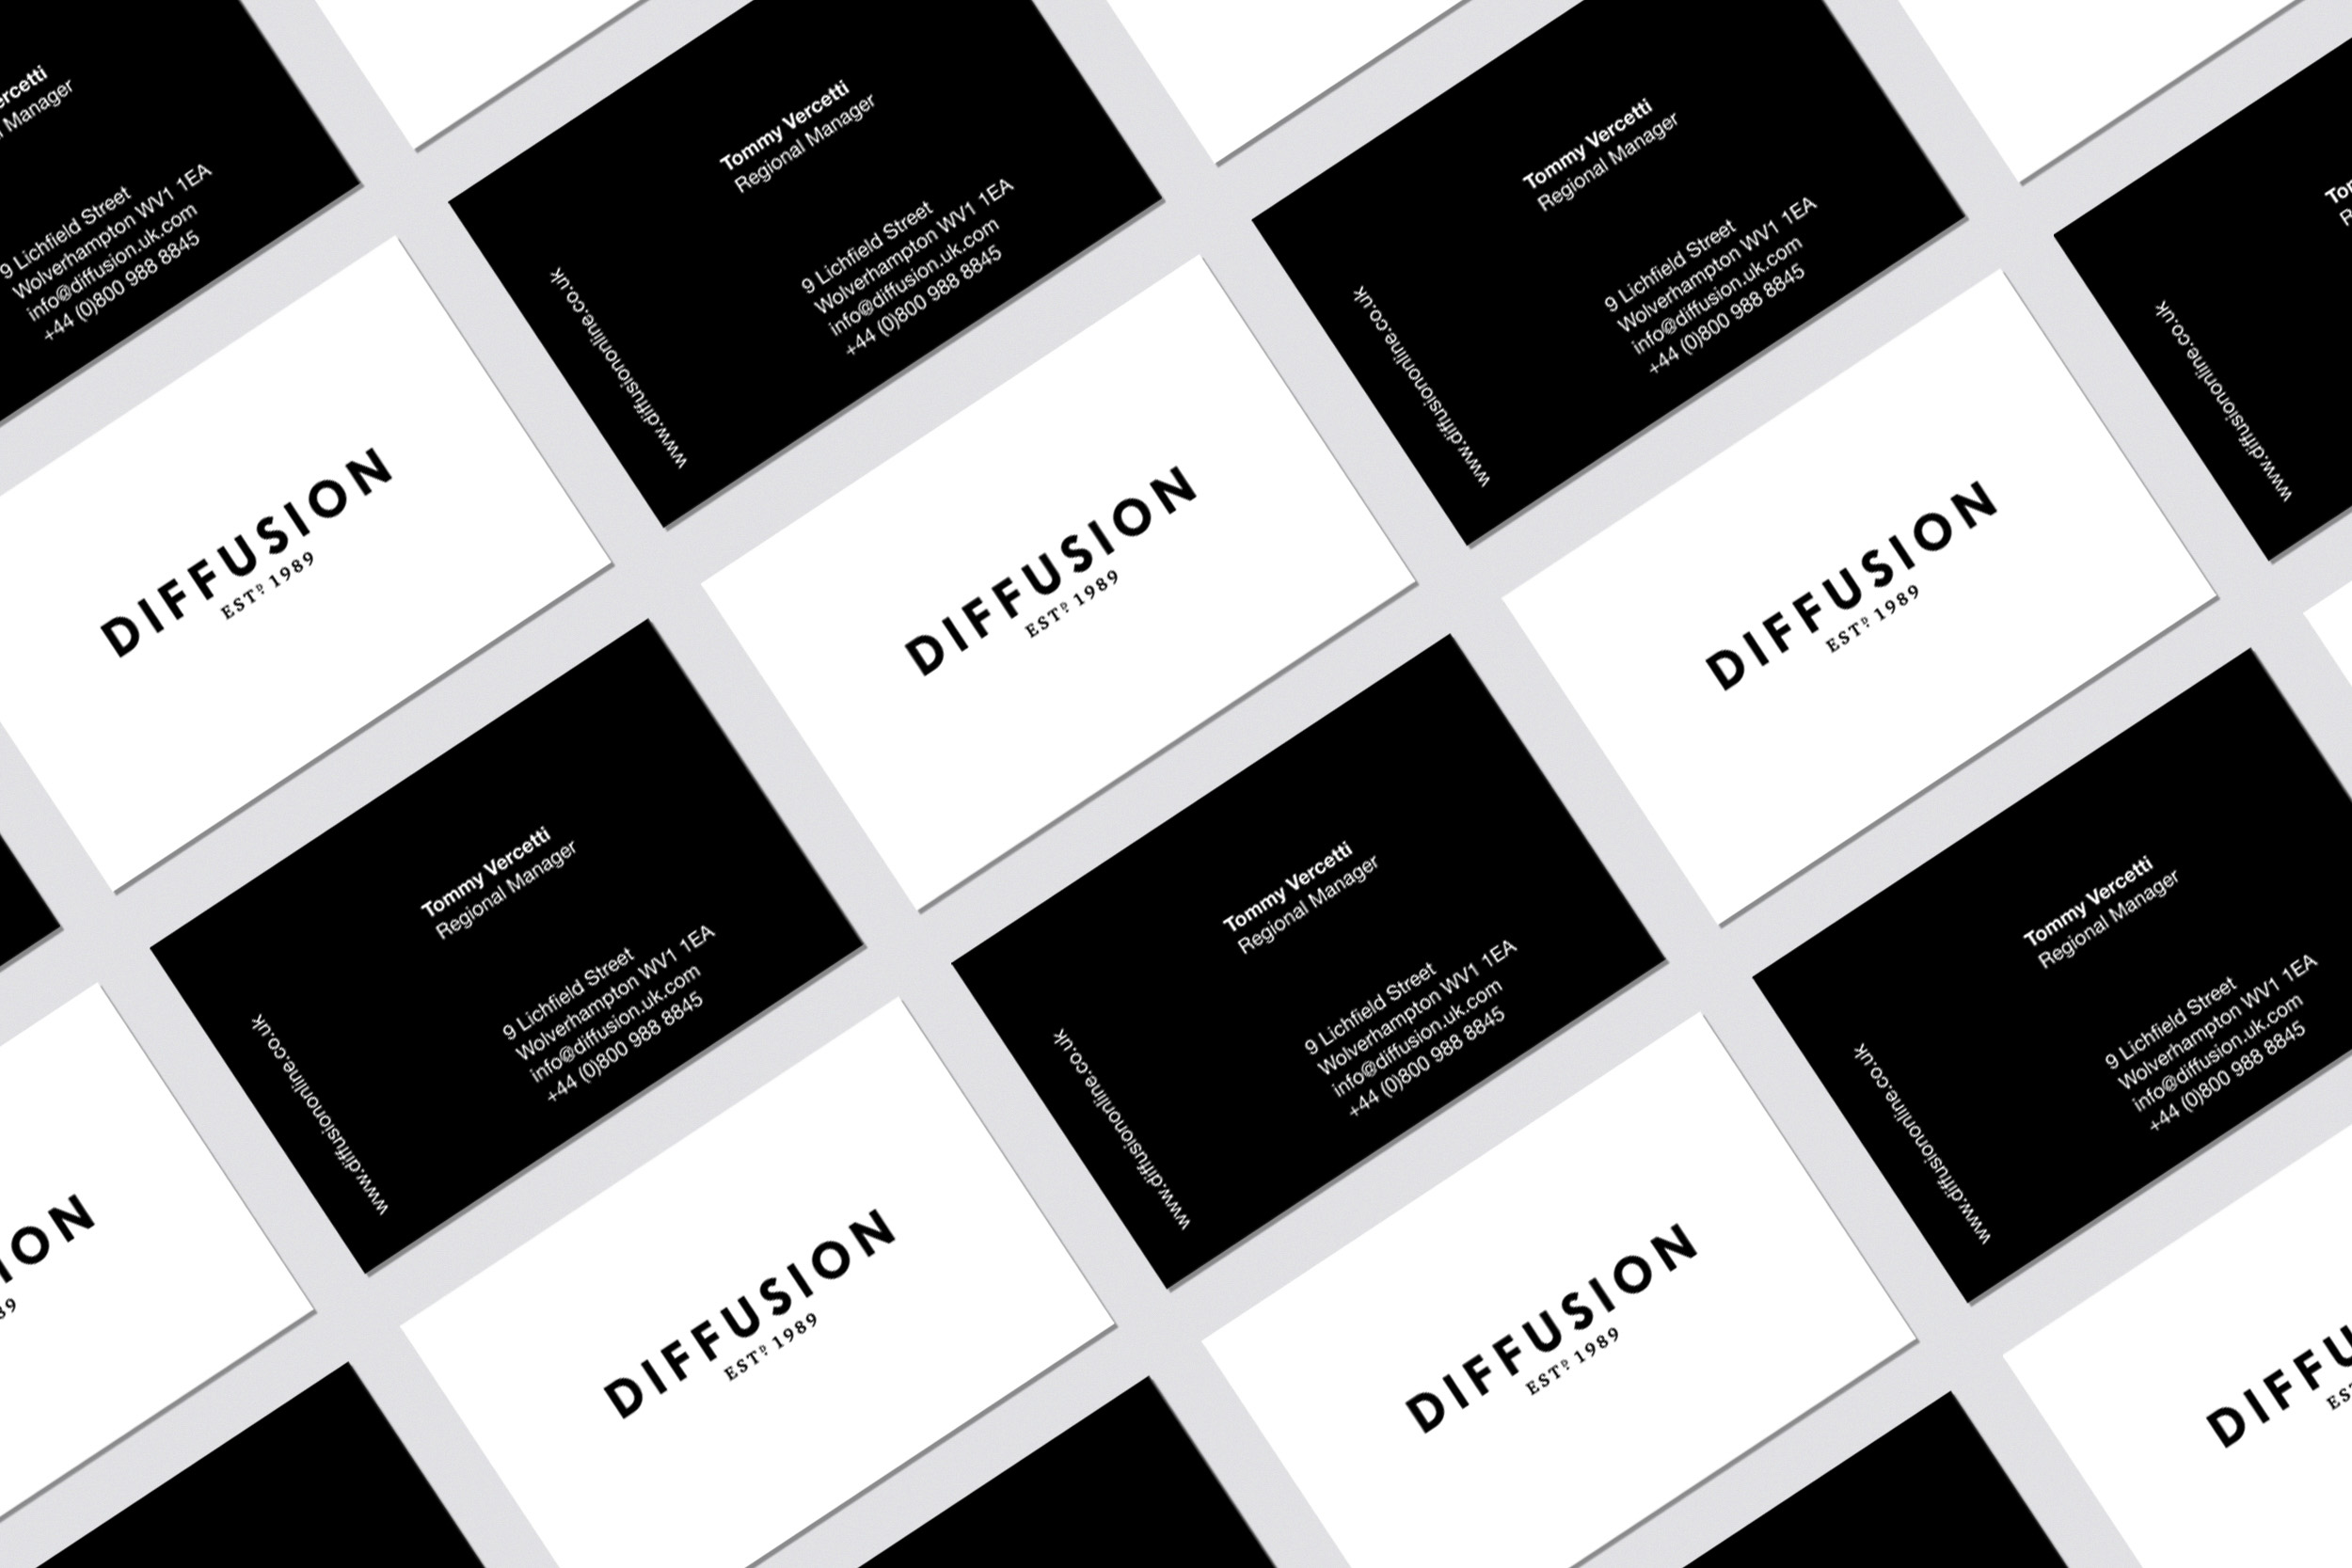 Diffusion by Wah Wah Lab - Business Card Design 1.jpg